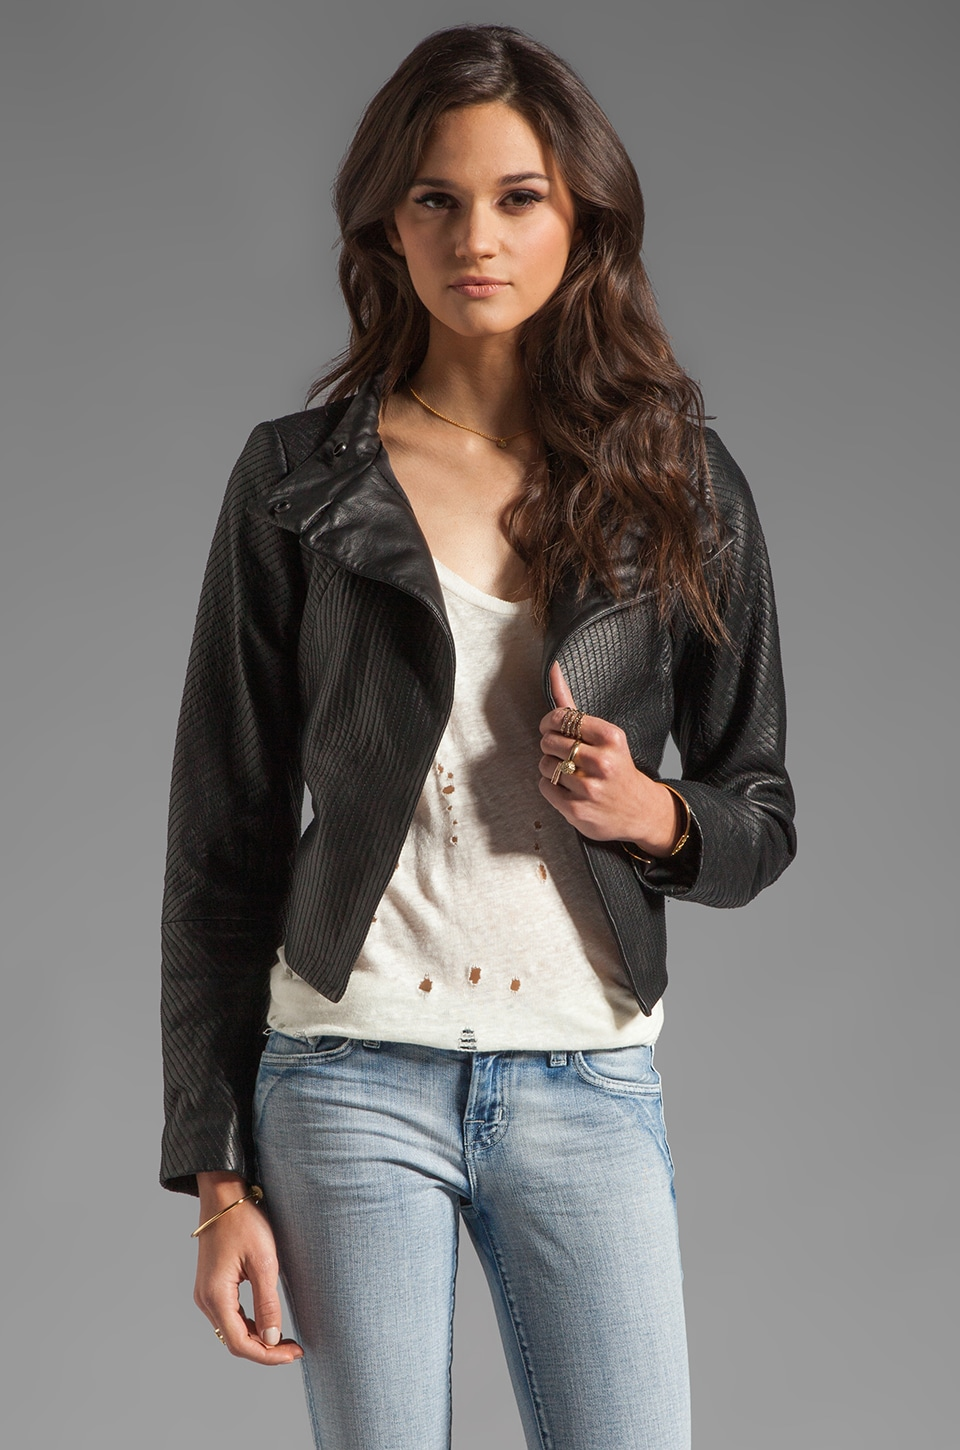 Theory Thoroughbred Leather Embry Jacket in Black